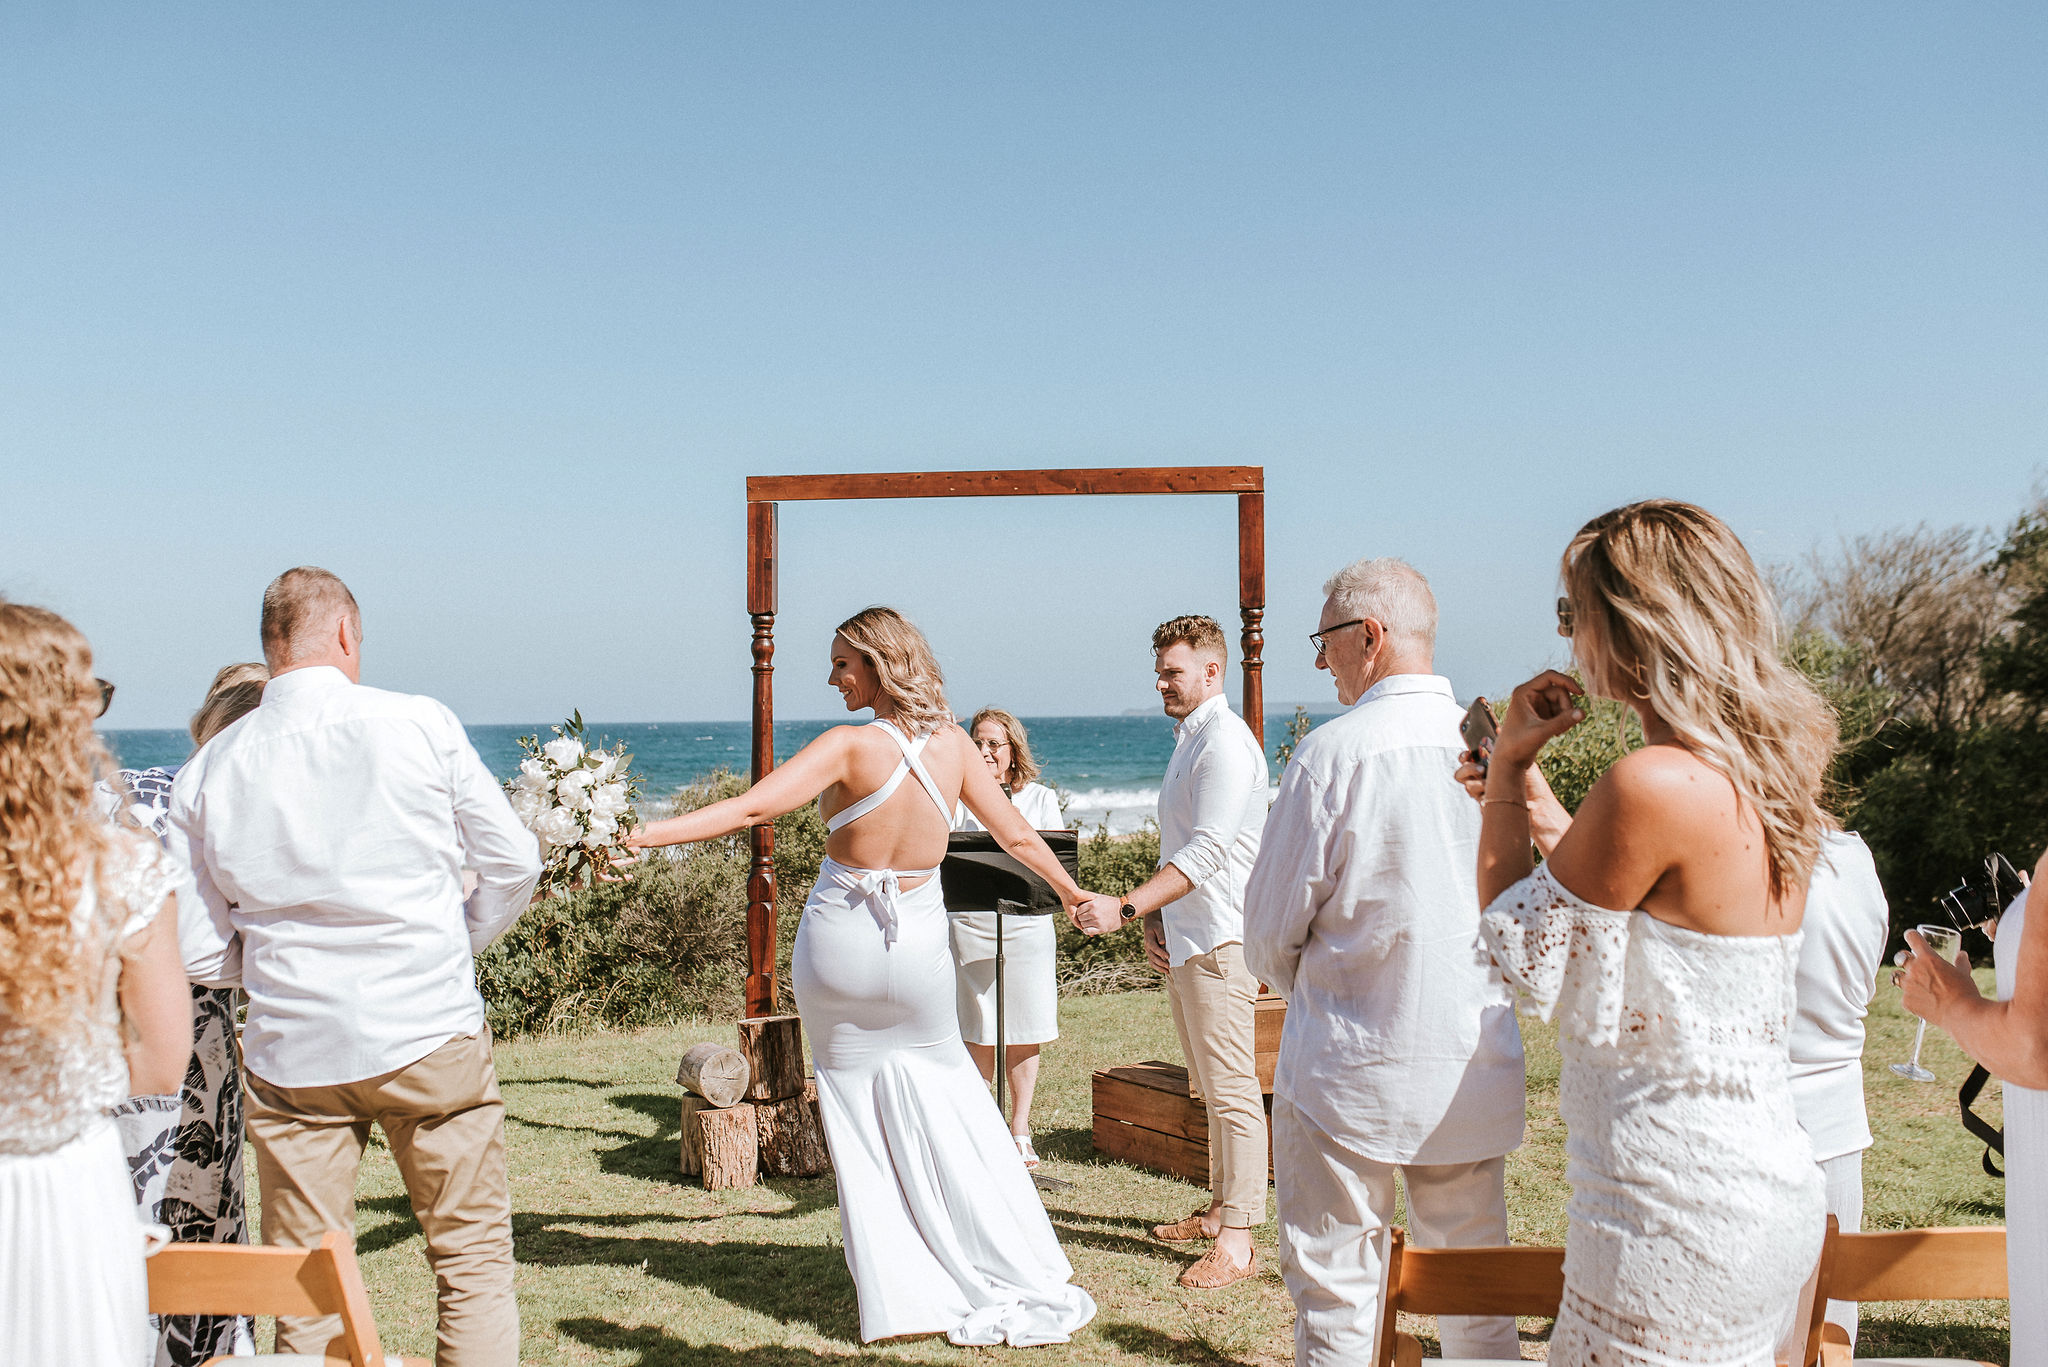 CULBURRA-BEACH-WEDDING-HEFFERNAN-PREVIEW-21.jpg